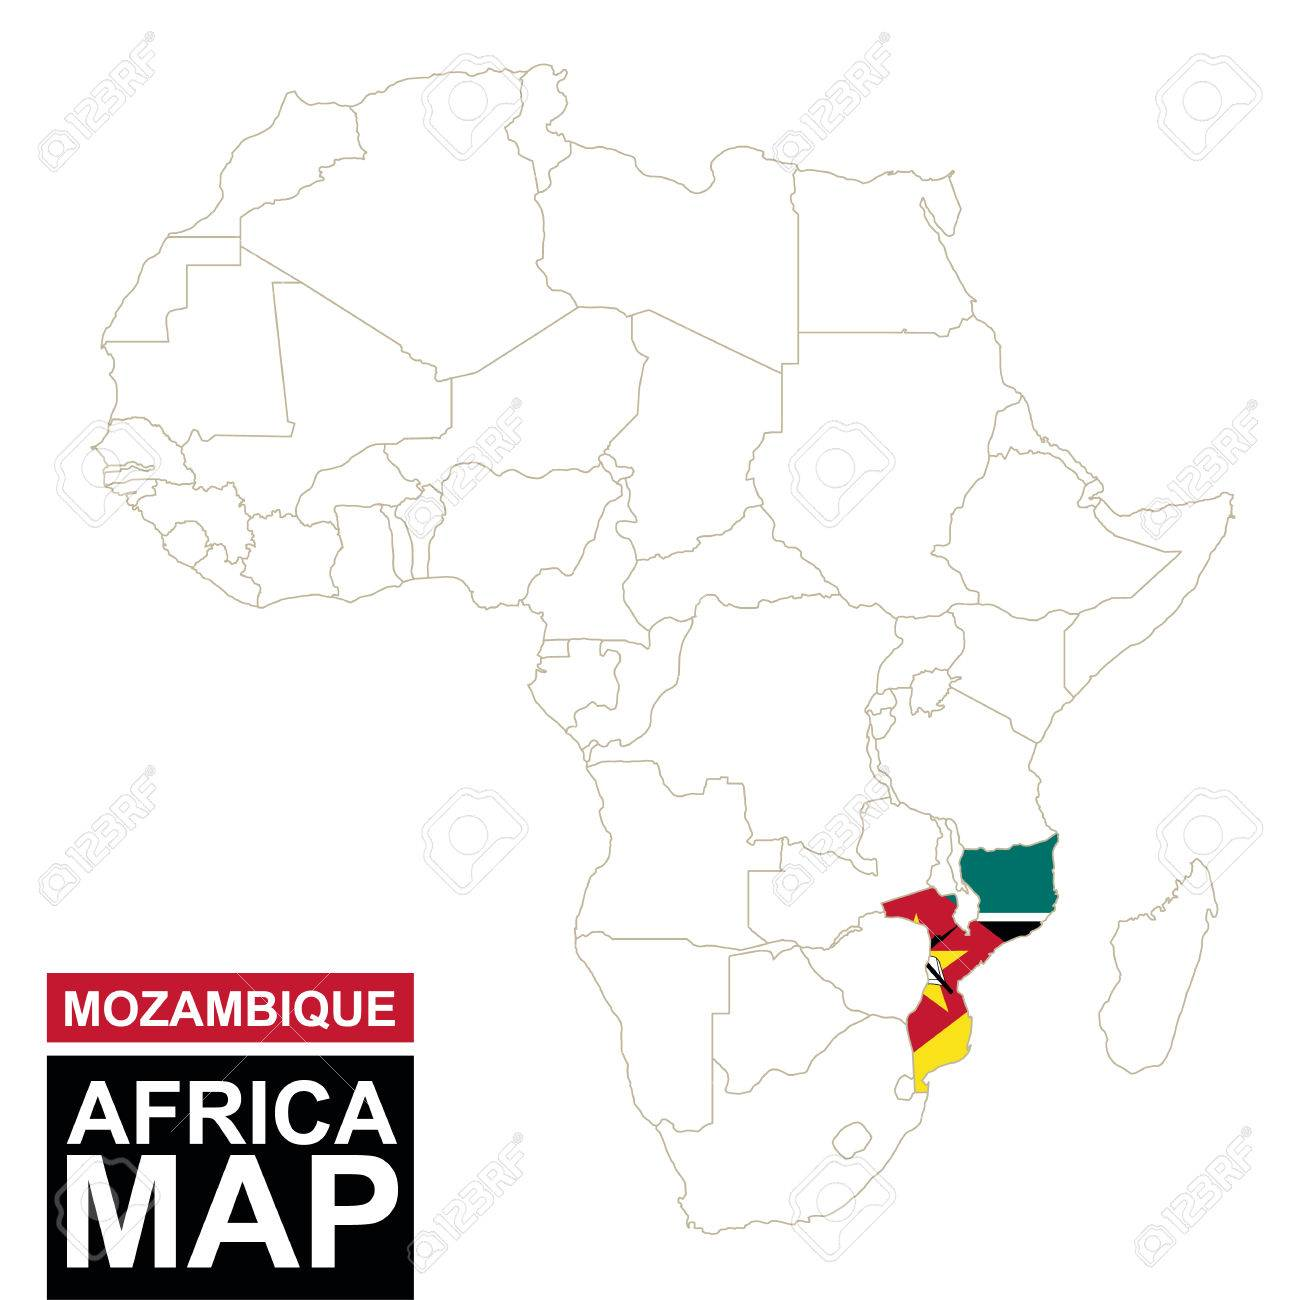 Africa contoured map with highlighted mozambique mozambique africa contoured map with highlighted mozambique mozambique map and flag on africa map vector sciox Choice Image